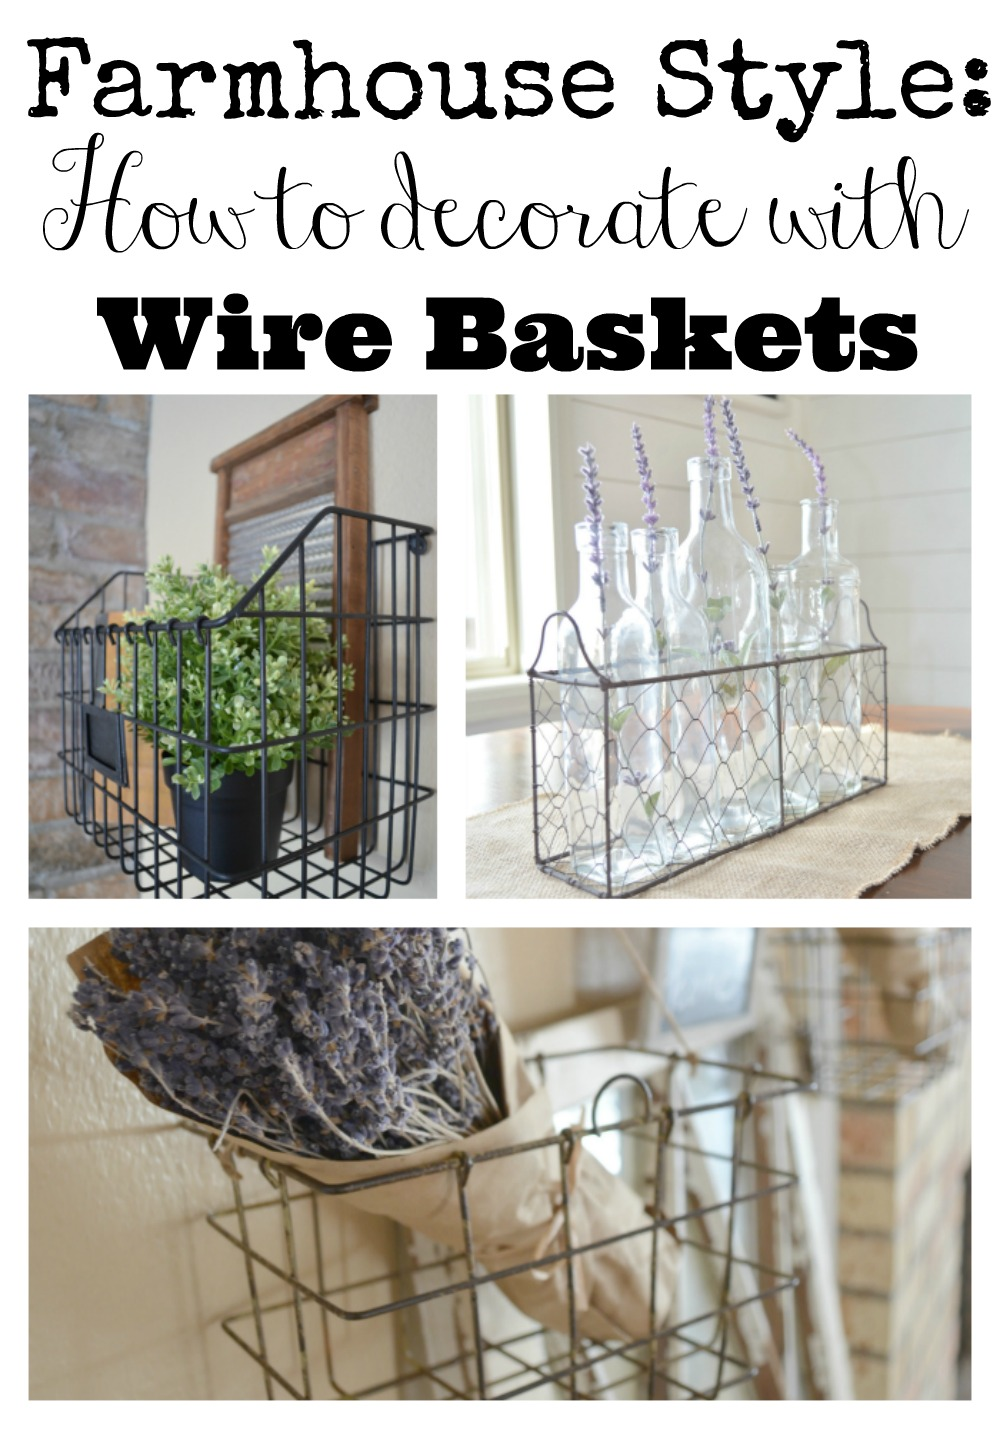 Bon Farmhouse Style: How To Decorate With Wire Baskets